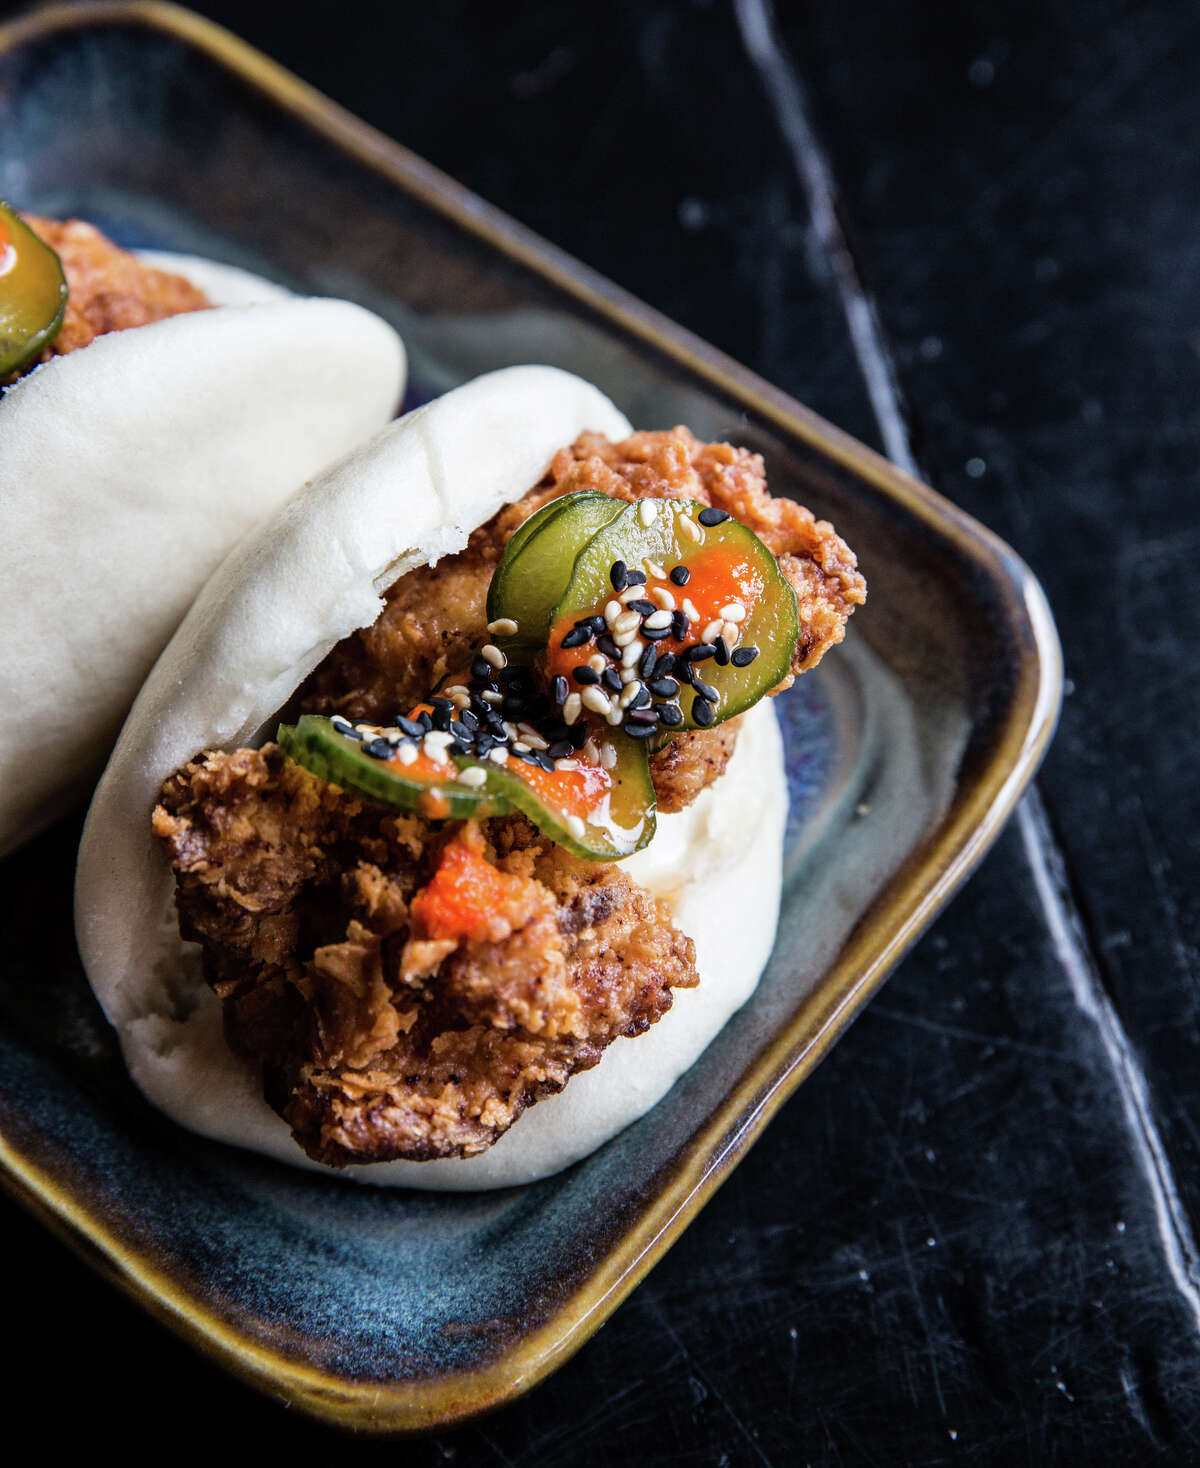 A study in contrasts: Hapa Ramen's buttermilk fried chicken steamed bun features a satisfying juxtaposition of crisp fried chicken and soft bun that's complemented by tangy hot sauce and creamy mayo.